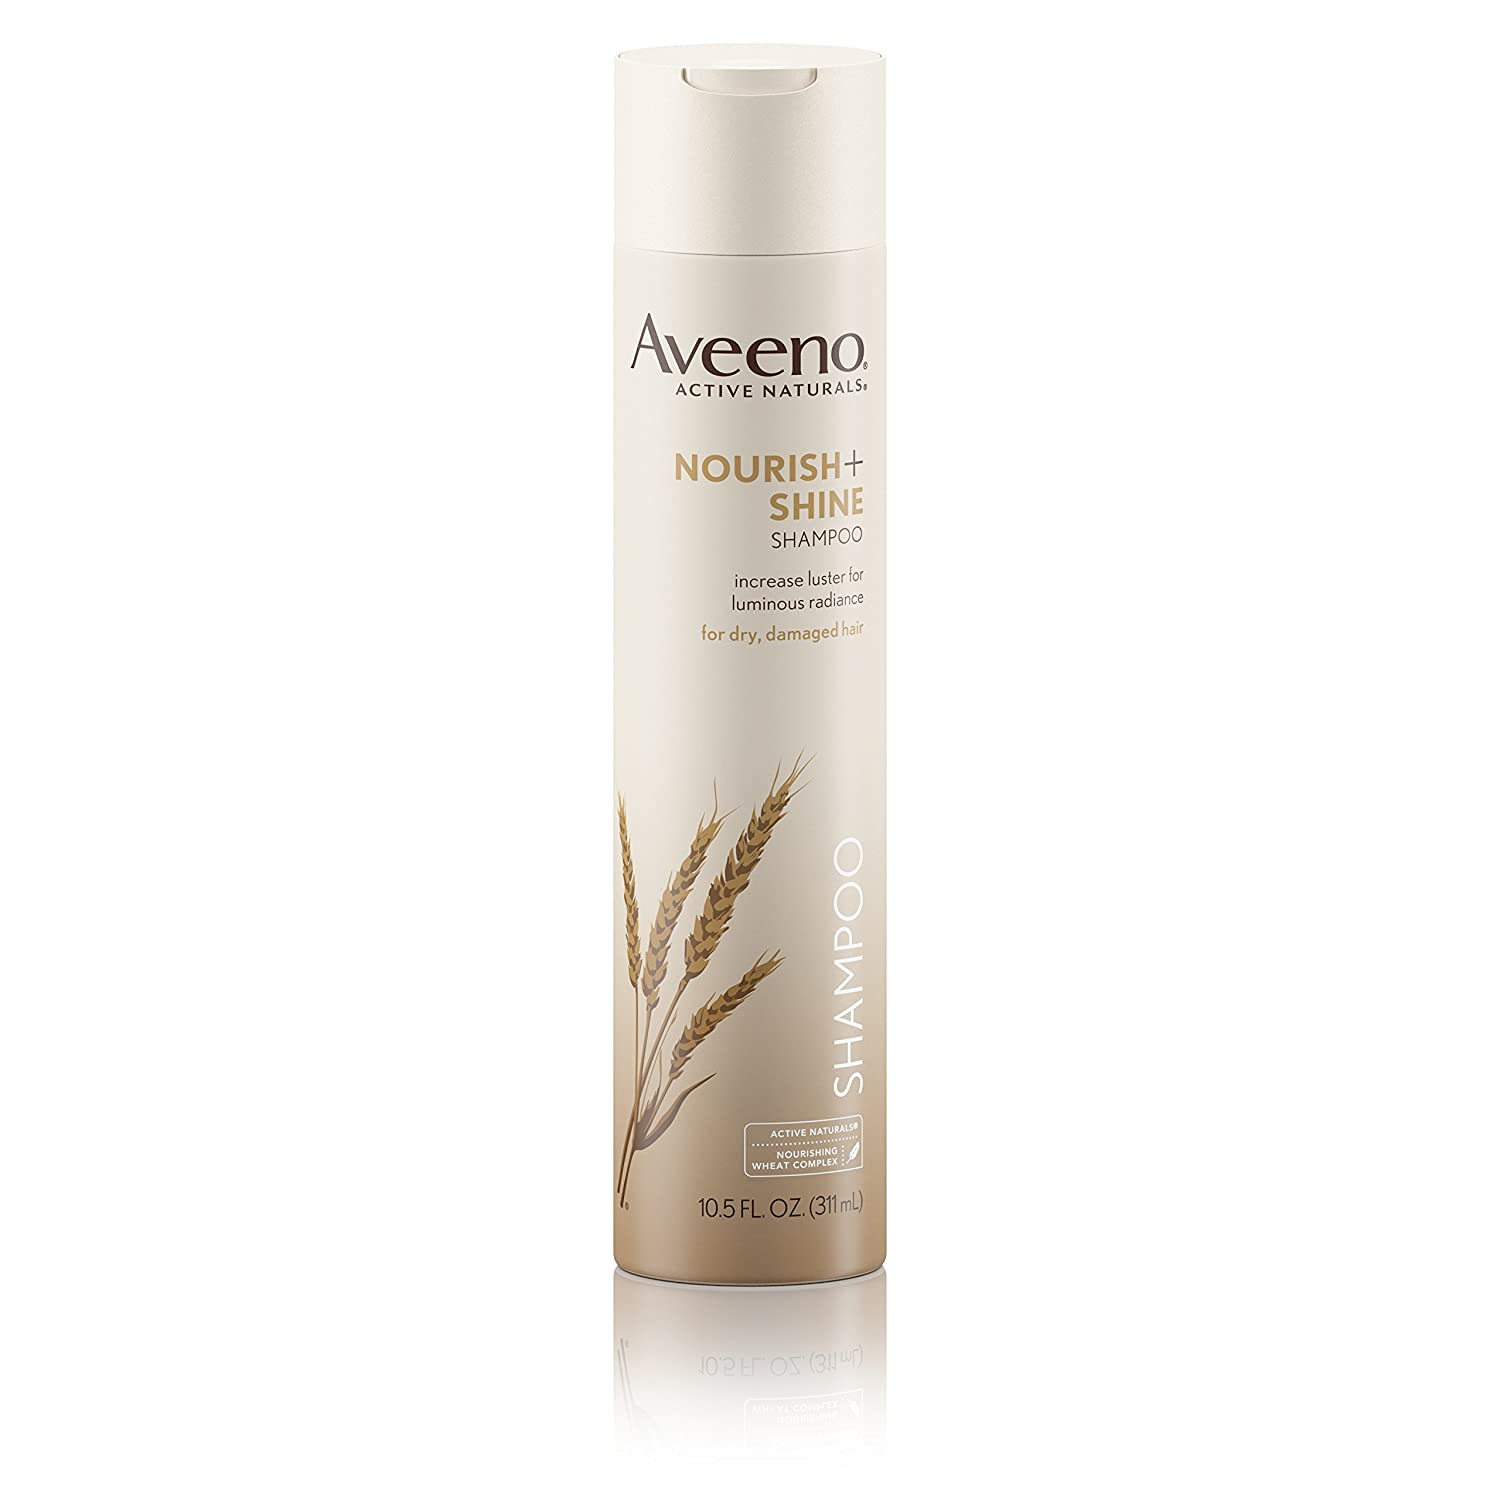 Aveeno Nourish+ Shine Illuminating Shampoo For Shiny Hair, 10.5 fl. oz